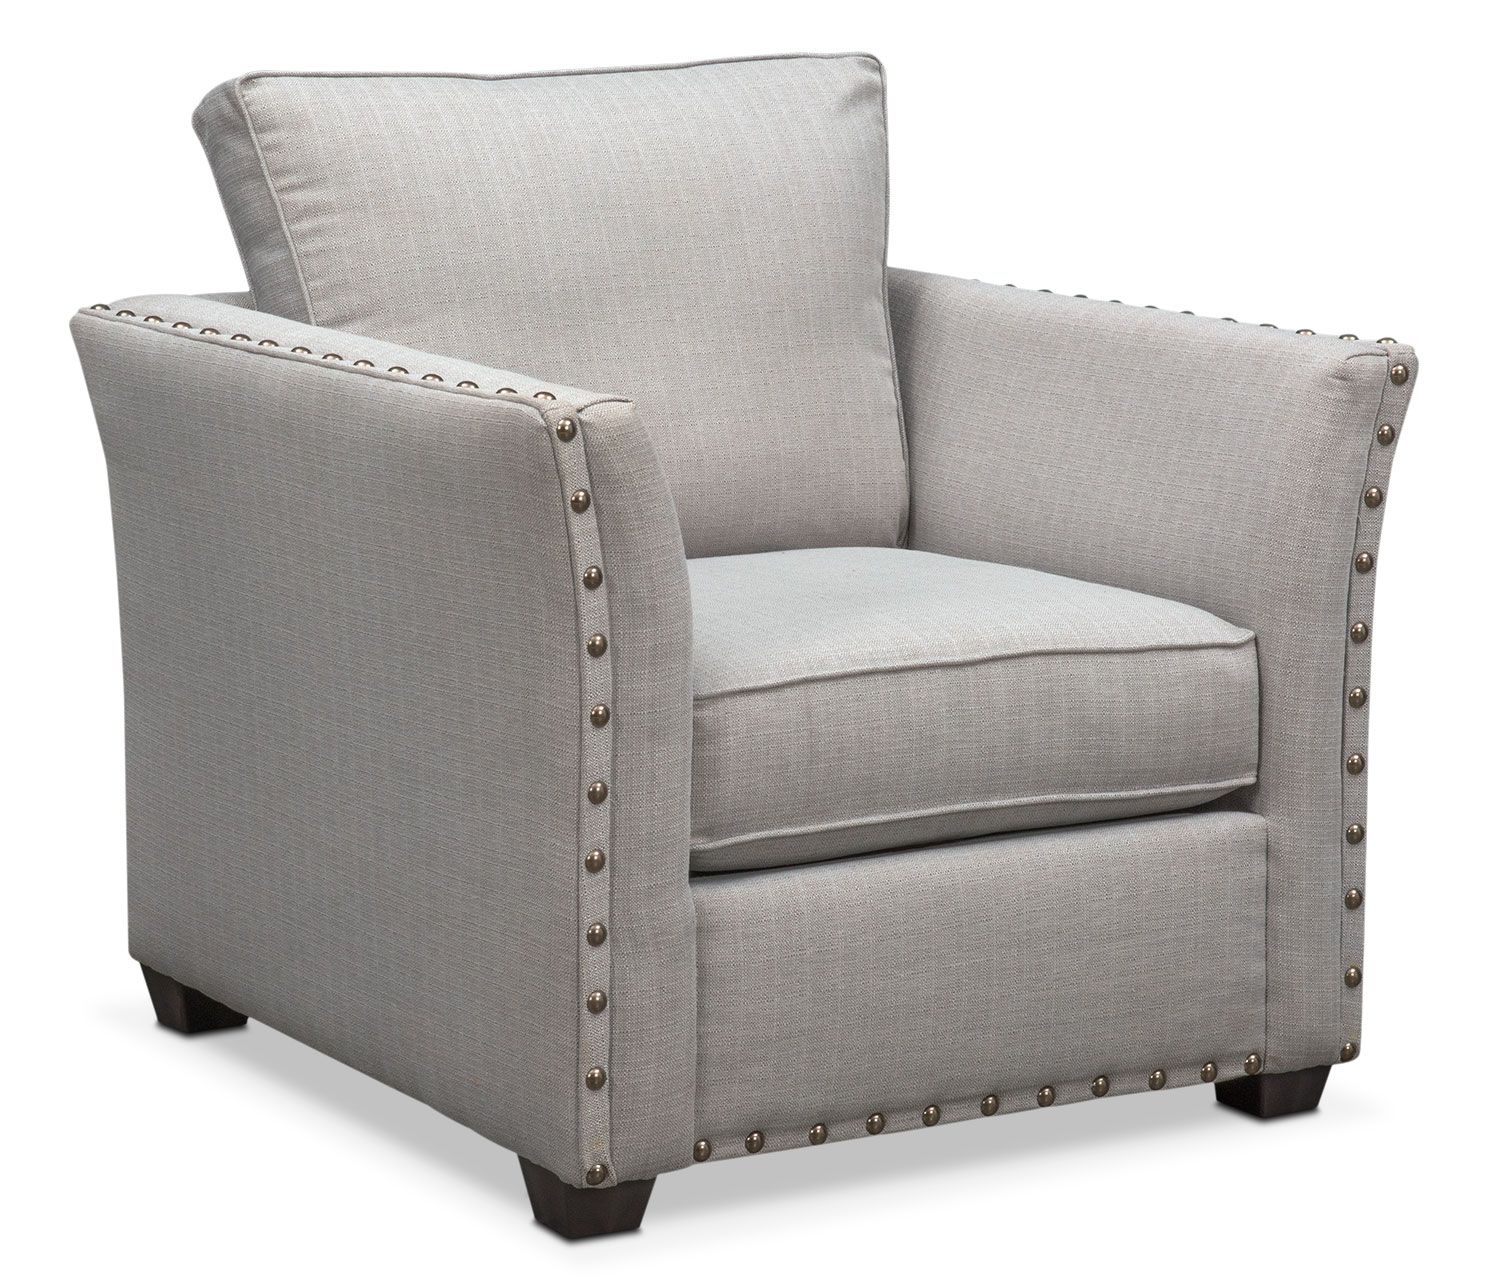 Living Room Furniture - Mckenna Chair